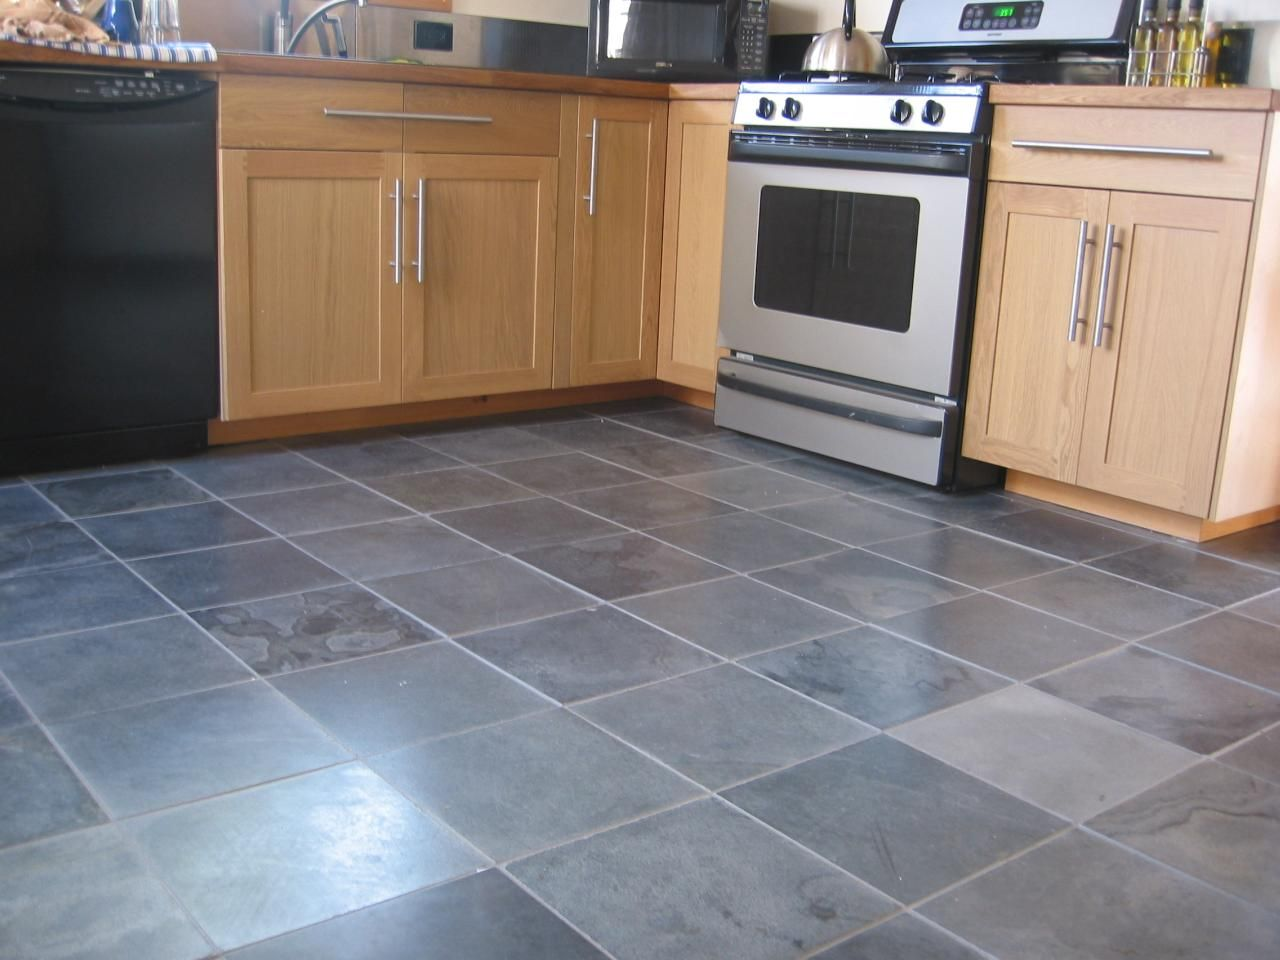 Tiling A Kitchen Floor This Gray Tile Flooring Will Be In My Ensuite Bathroom I Cant